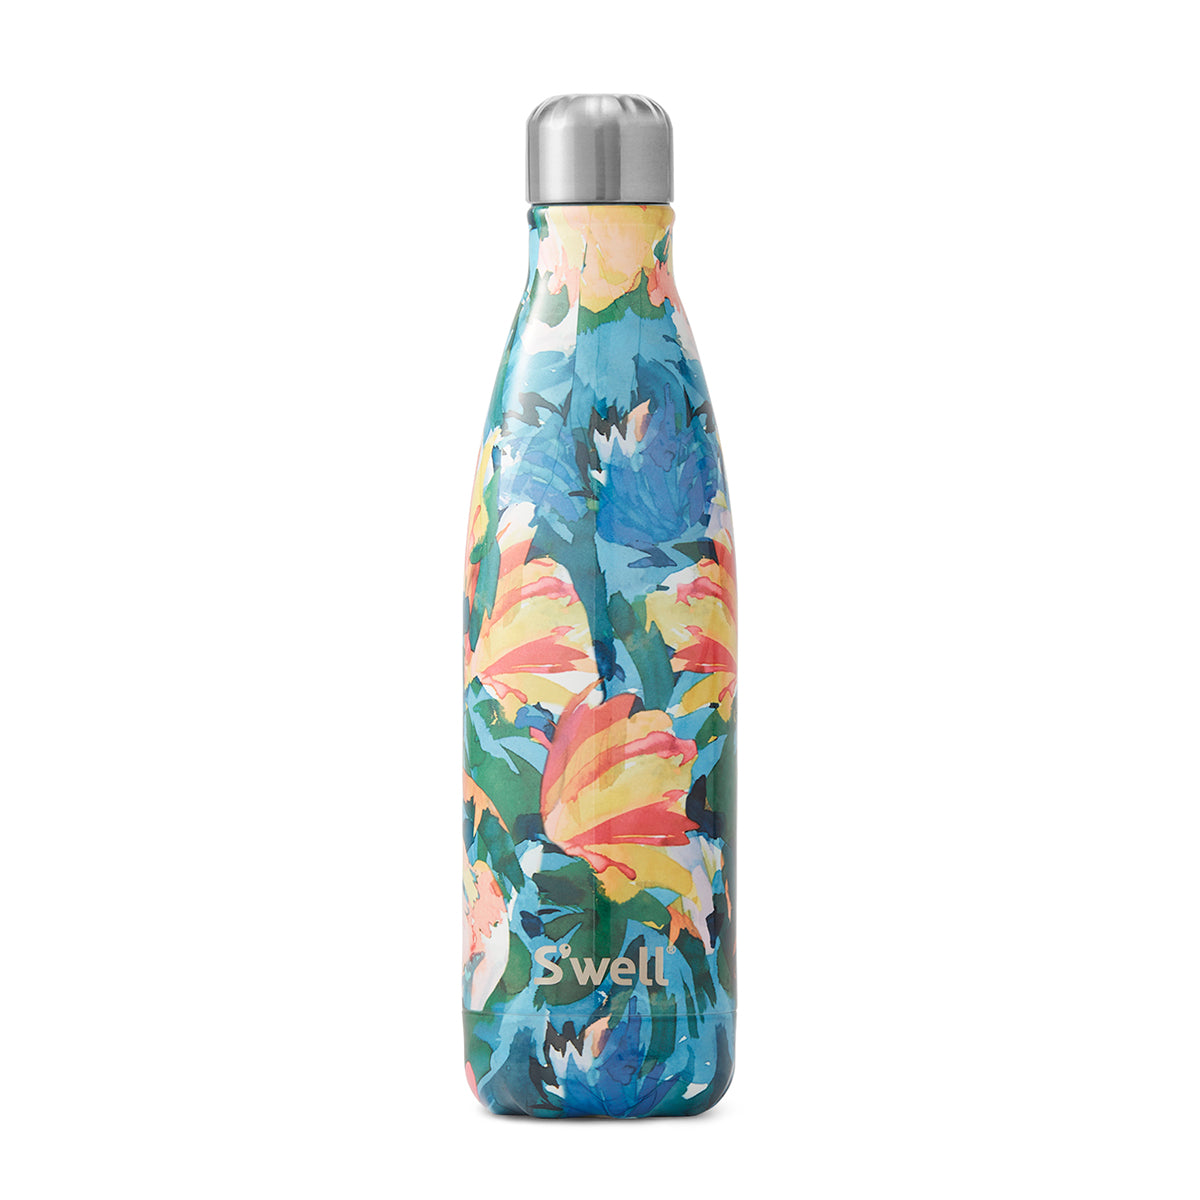 S'Well: Water Colour Floral Collection - 500ml Eden